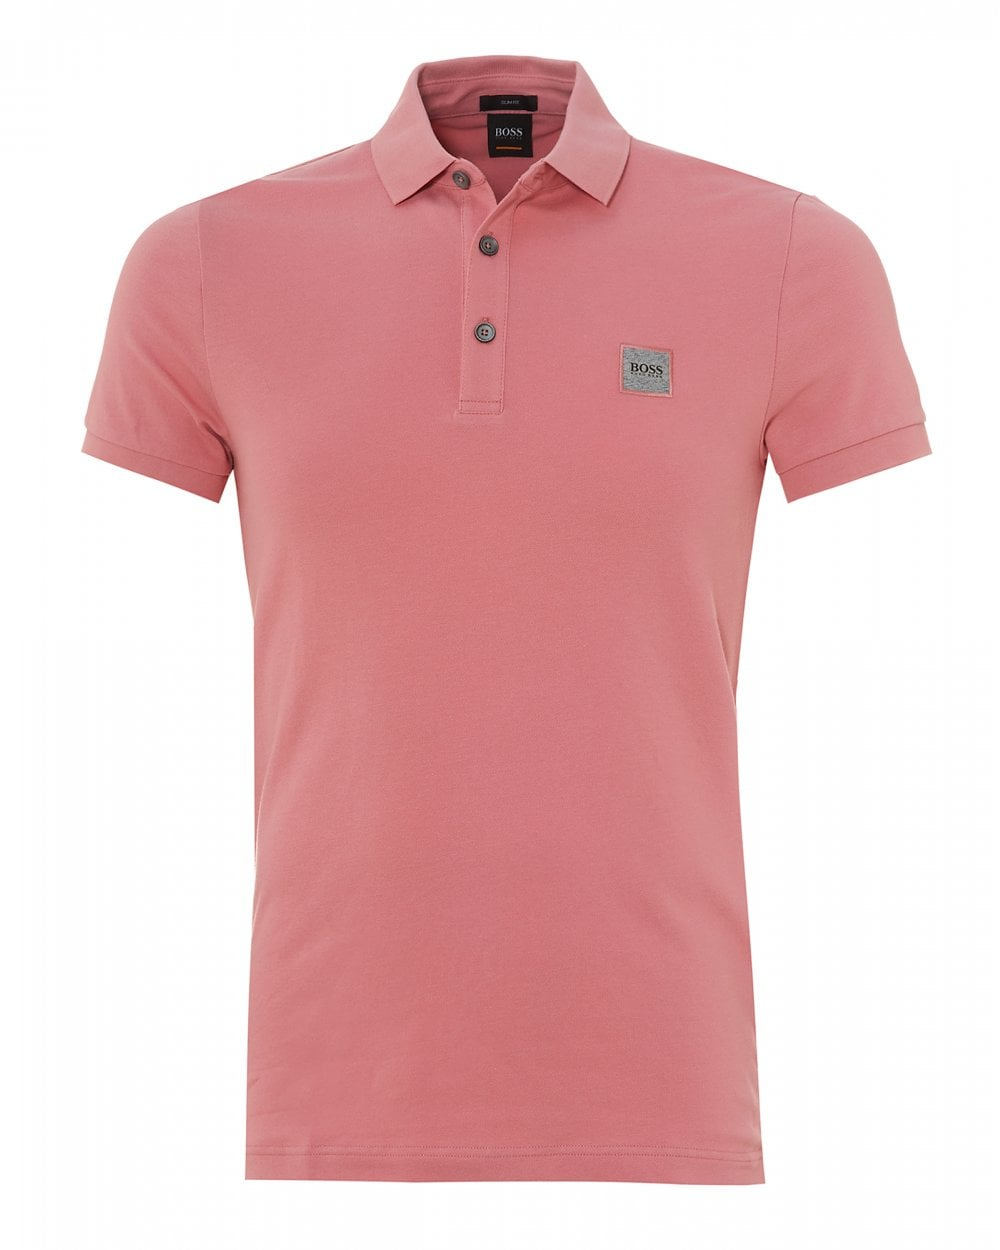 2f71f9c0 BOSS Casual Mens Passenger Polo, Slim Fit Pink Polo Shirt